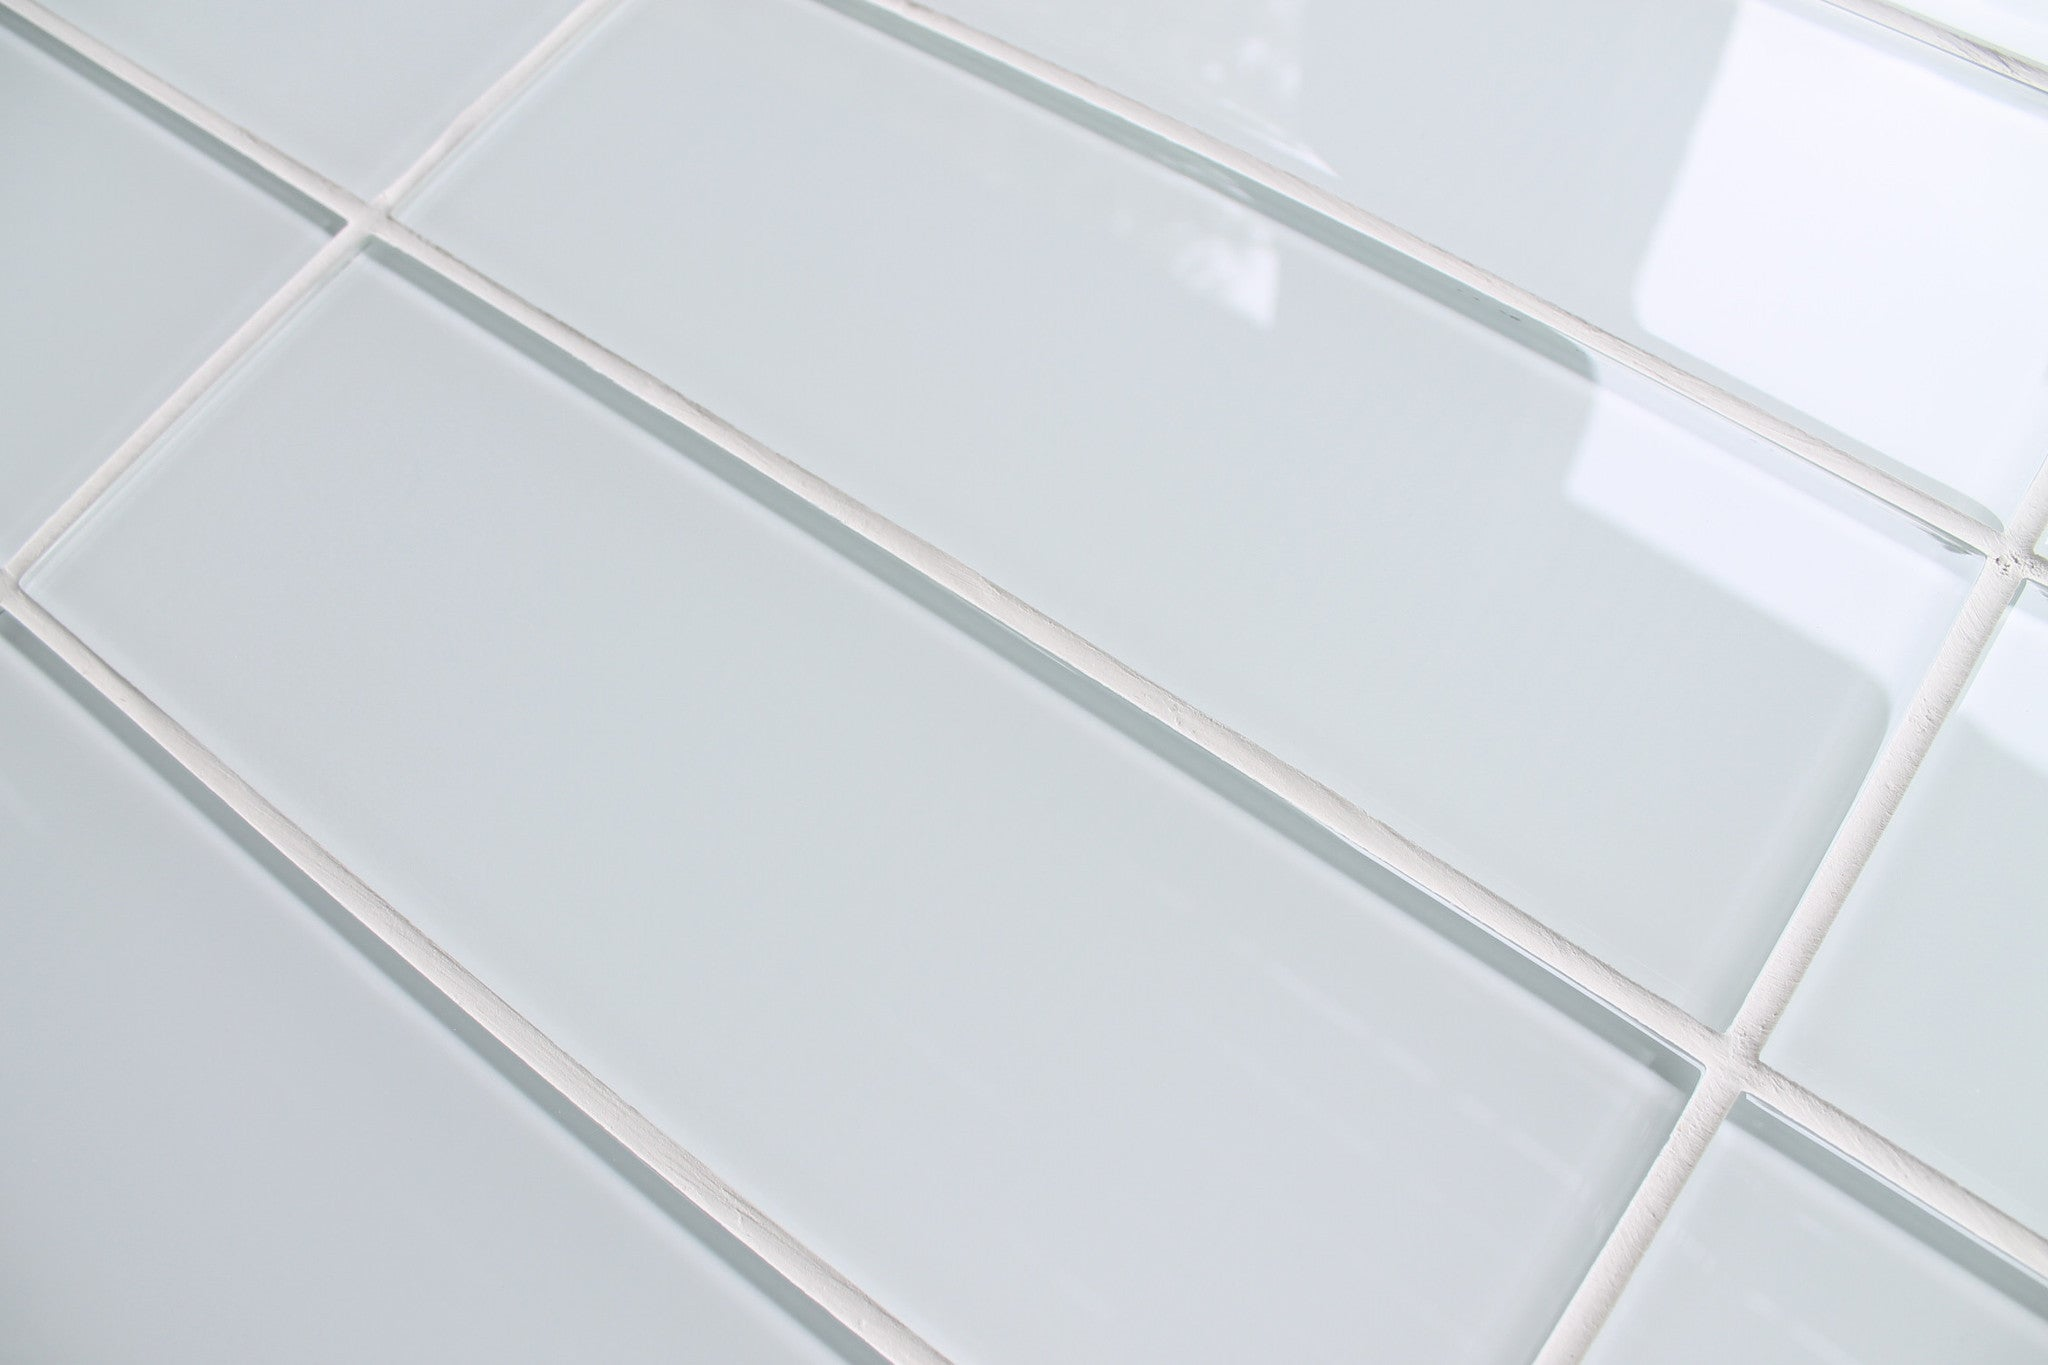 Snow white 4x12 glass subway tiles rocky point tile for Back painted glass tile